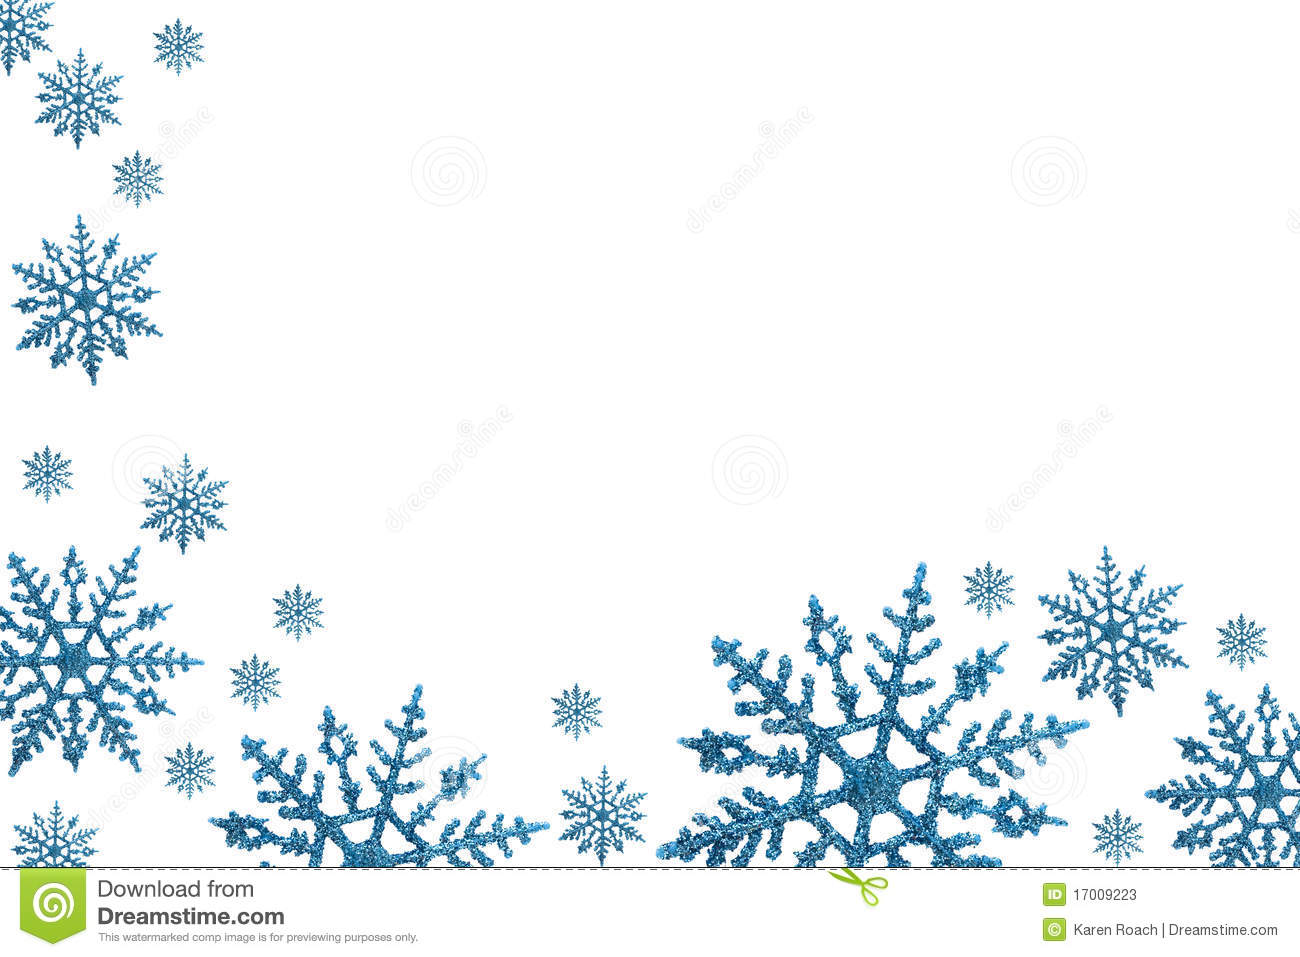 485 Winter Wonderland free clipart.